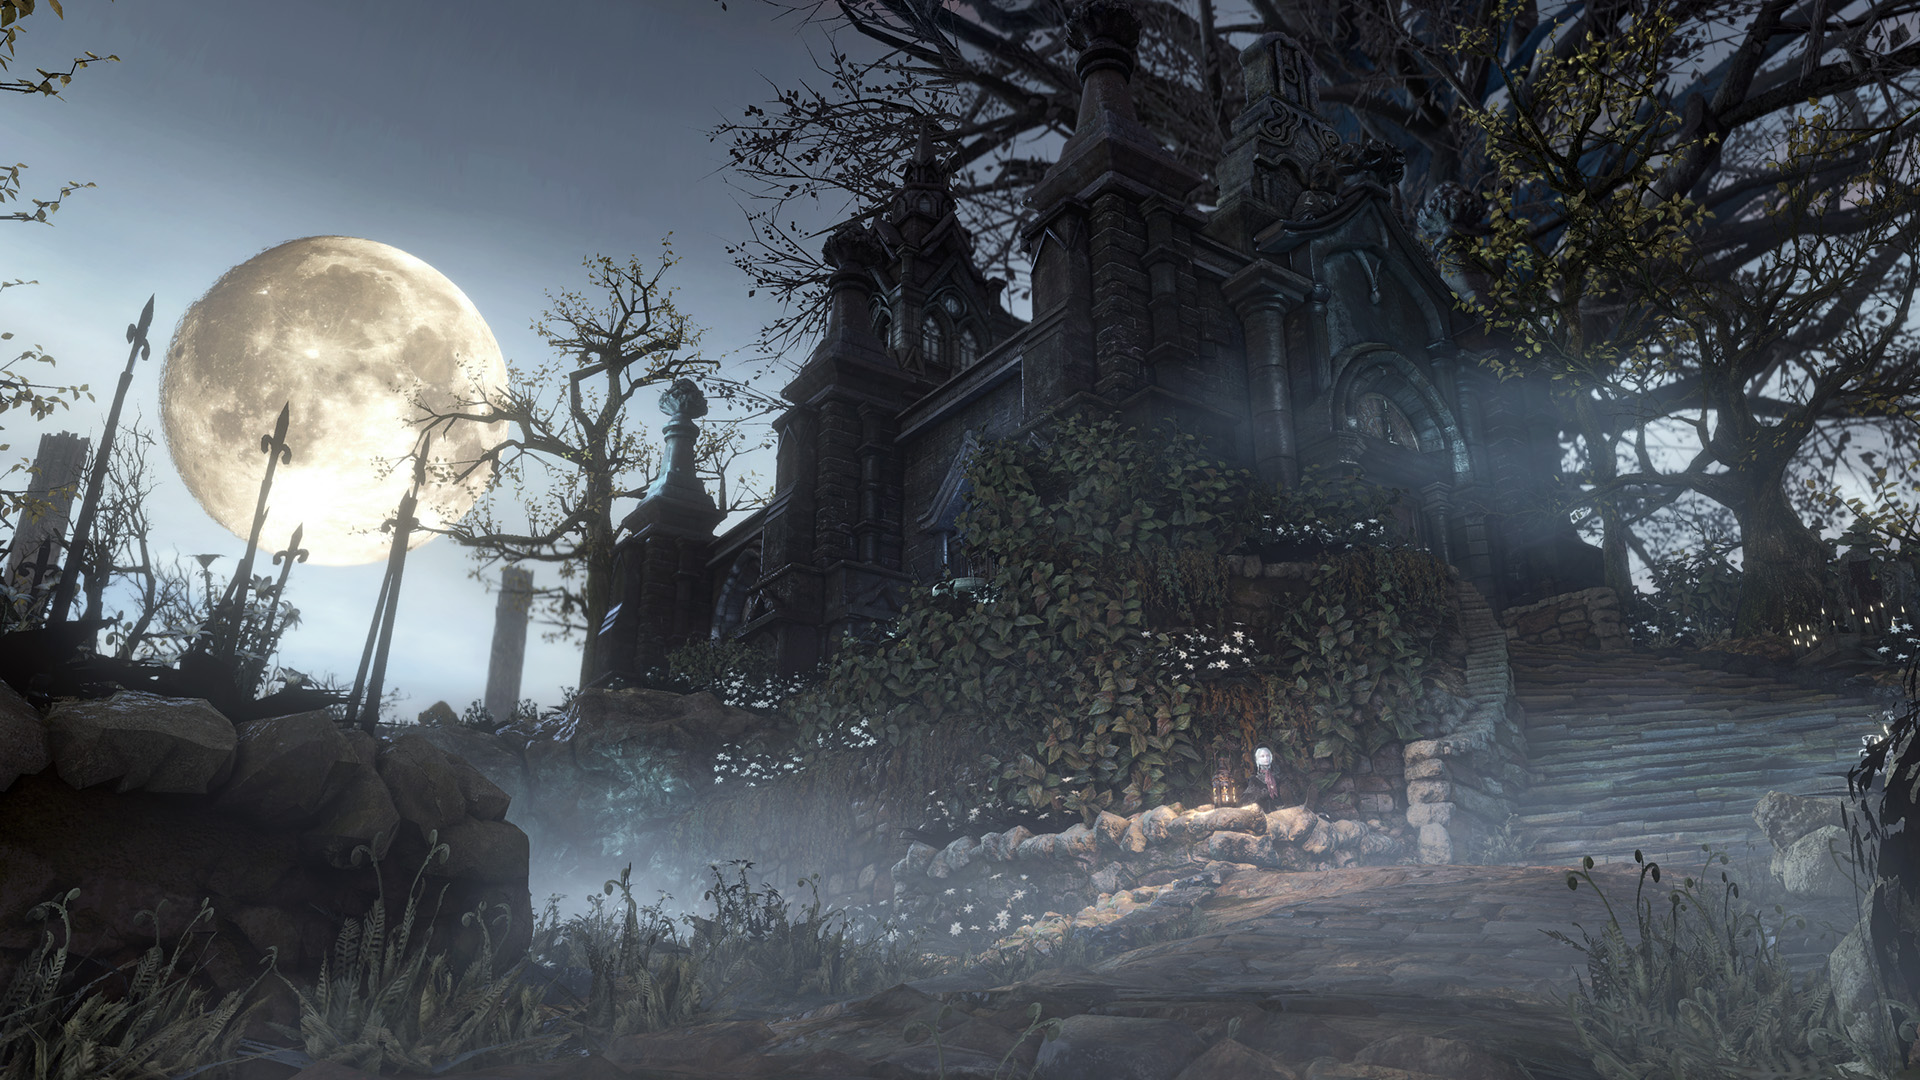 Bloodborne's grim world and high difficulty didn't scare away fans.